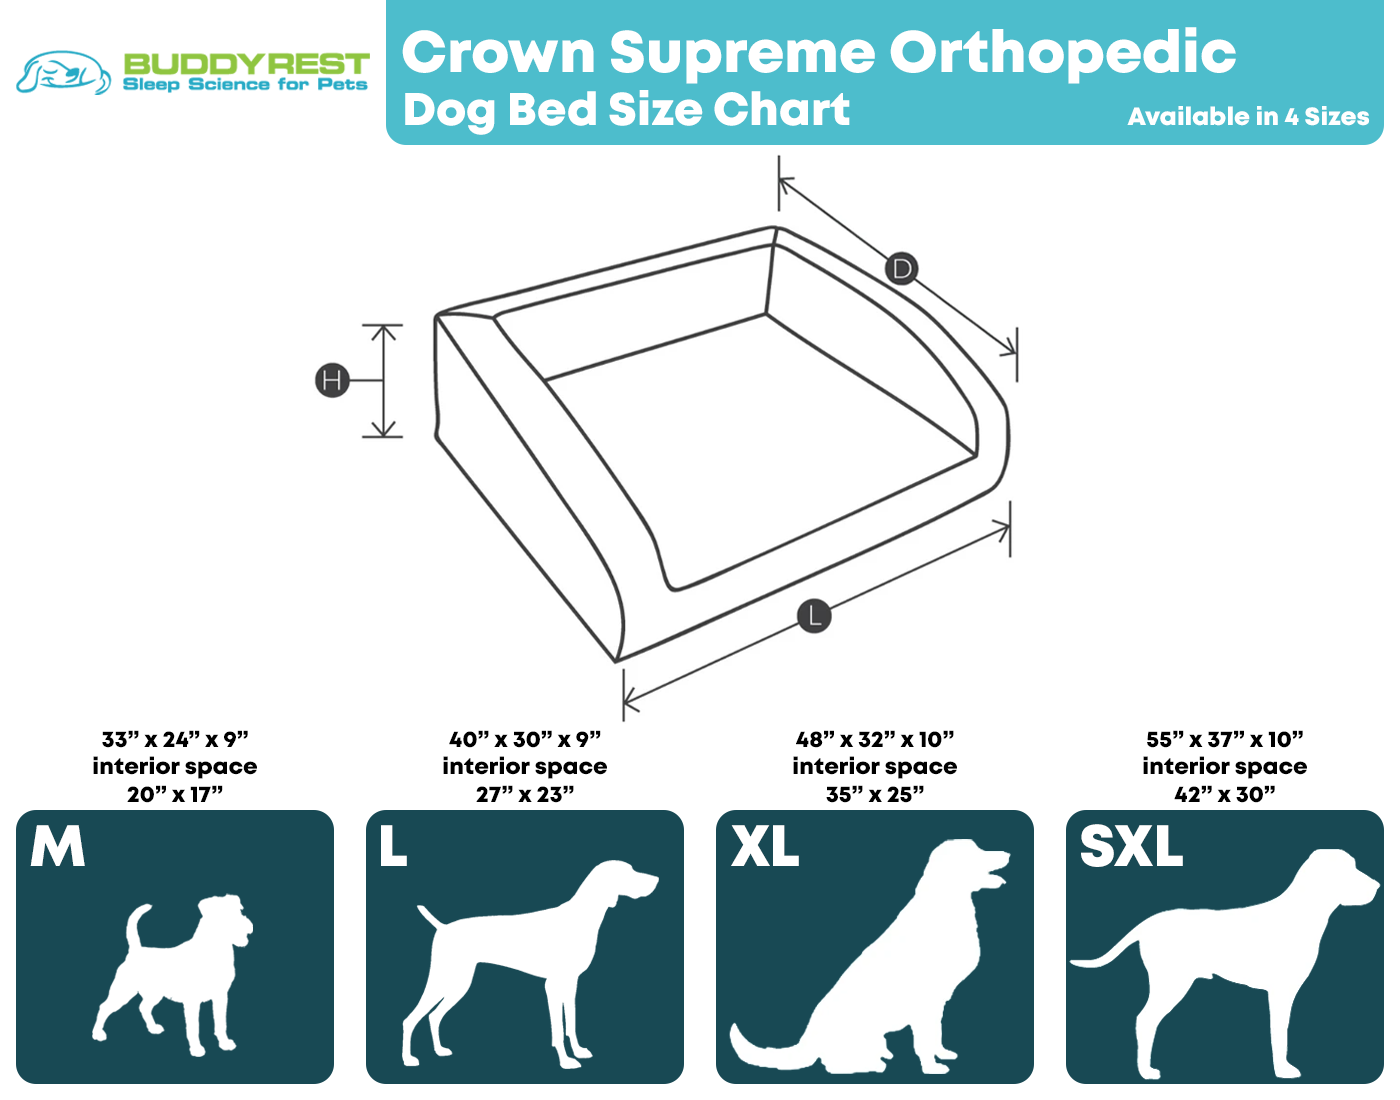 Crown Supreme Dog Bed Size Chart